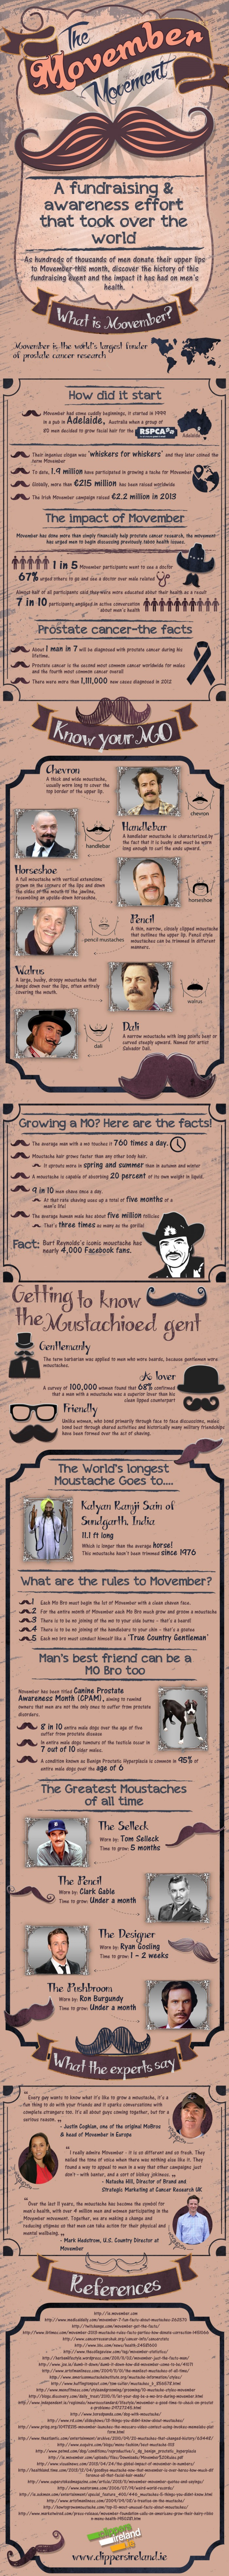 Clippers Ireland Infographic Movember (1)